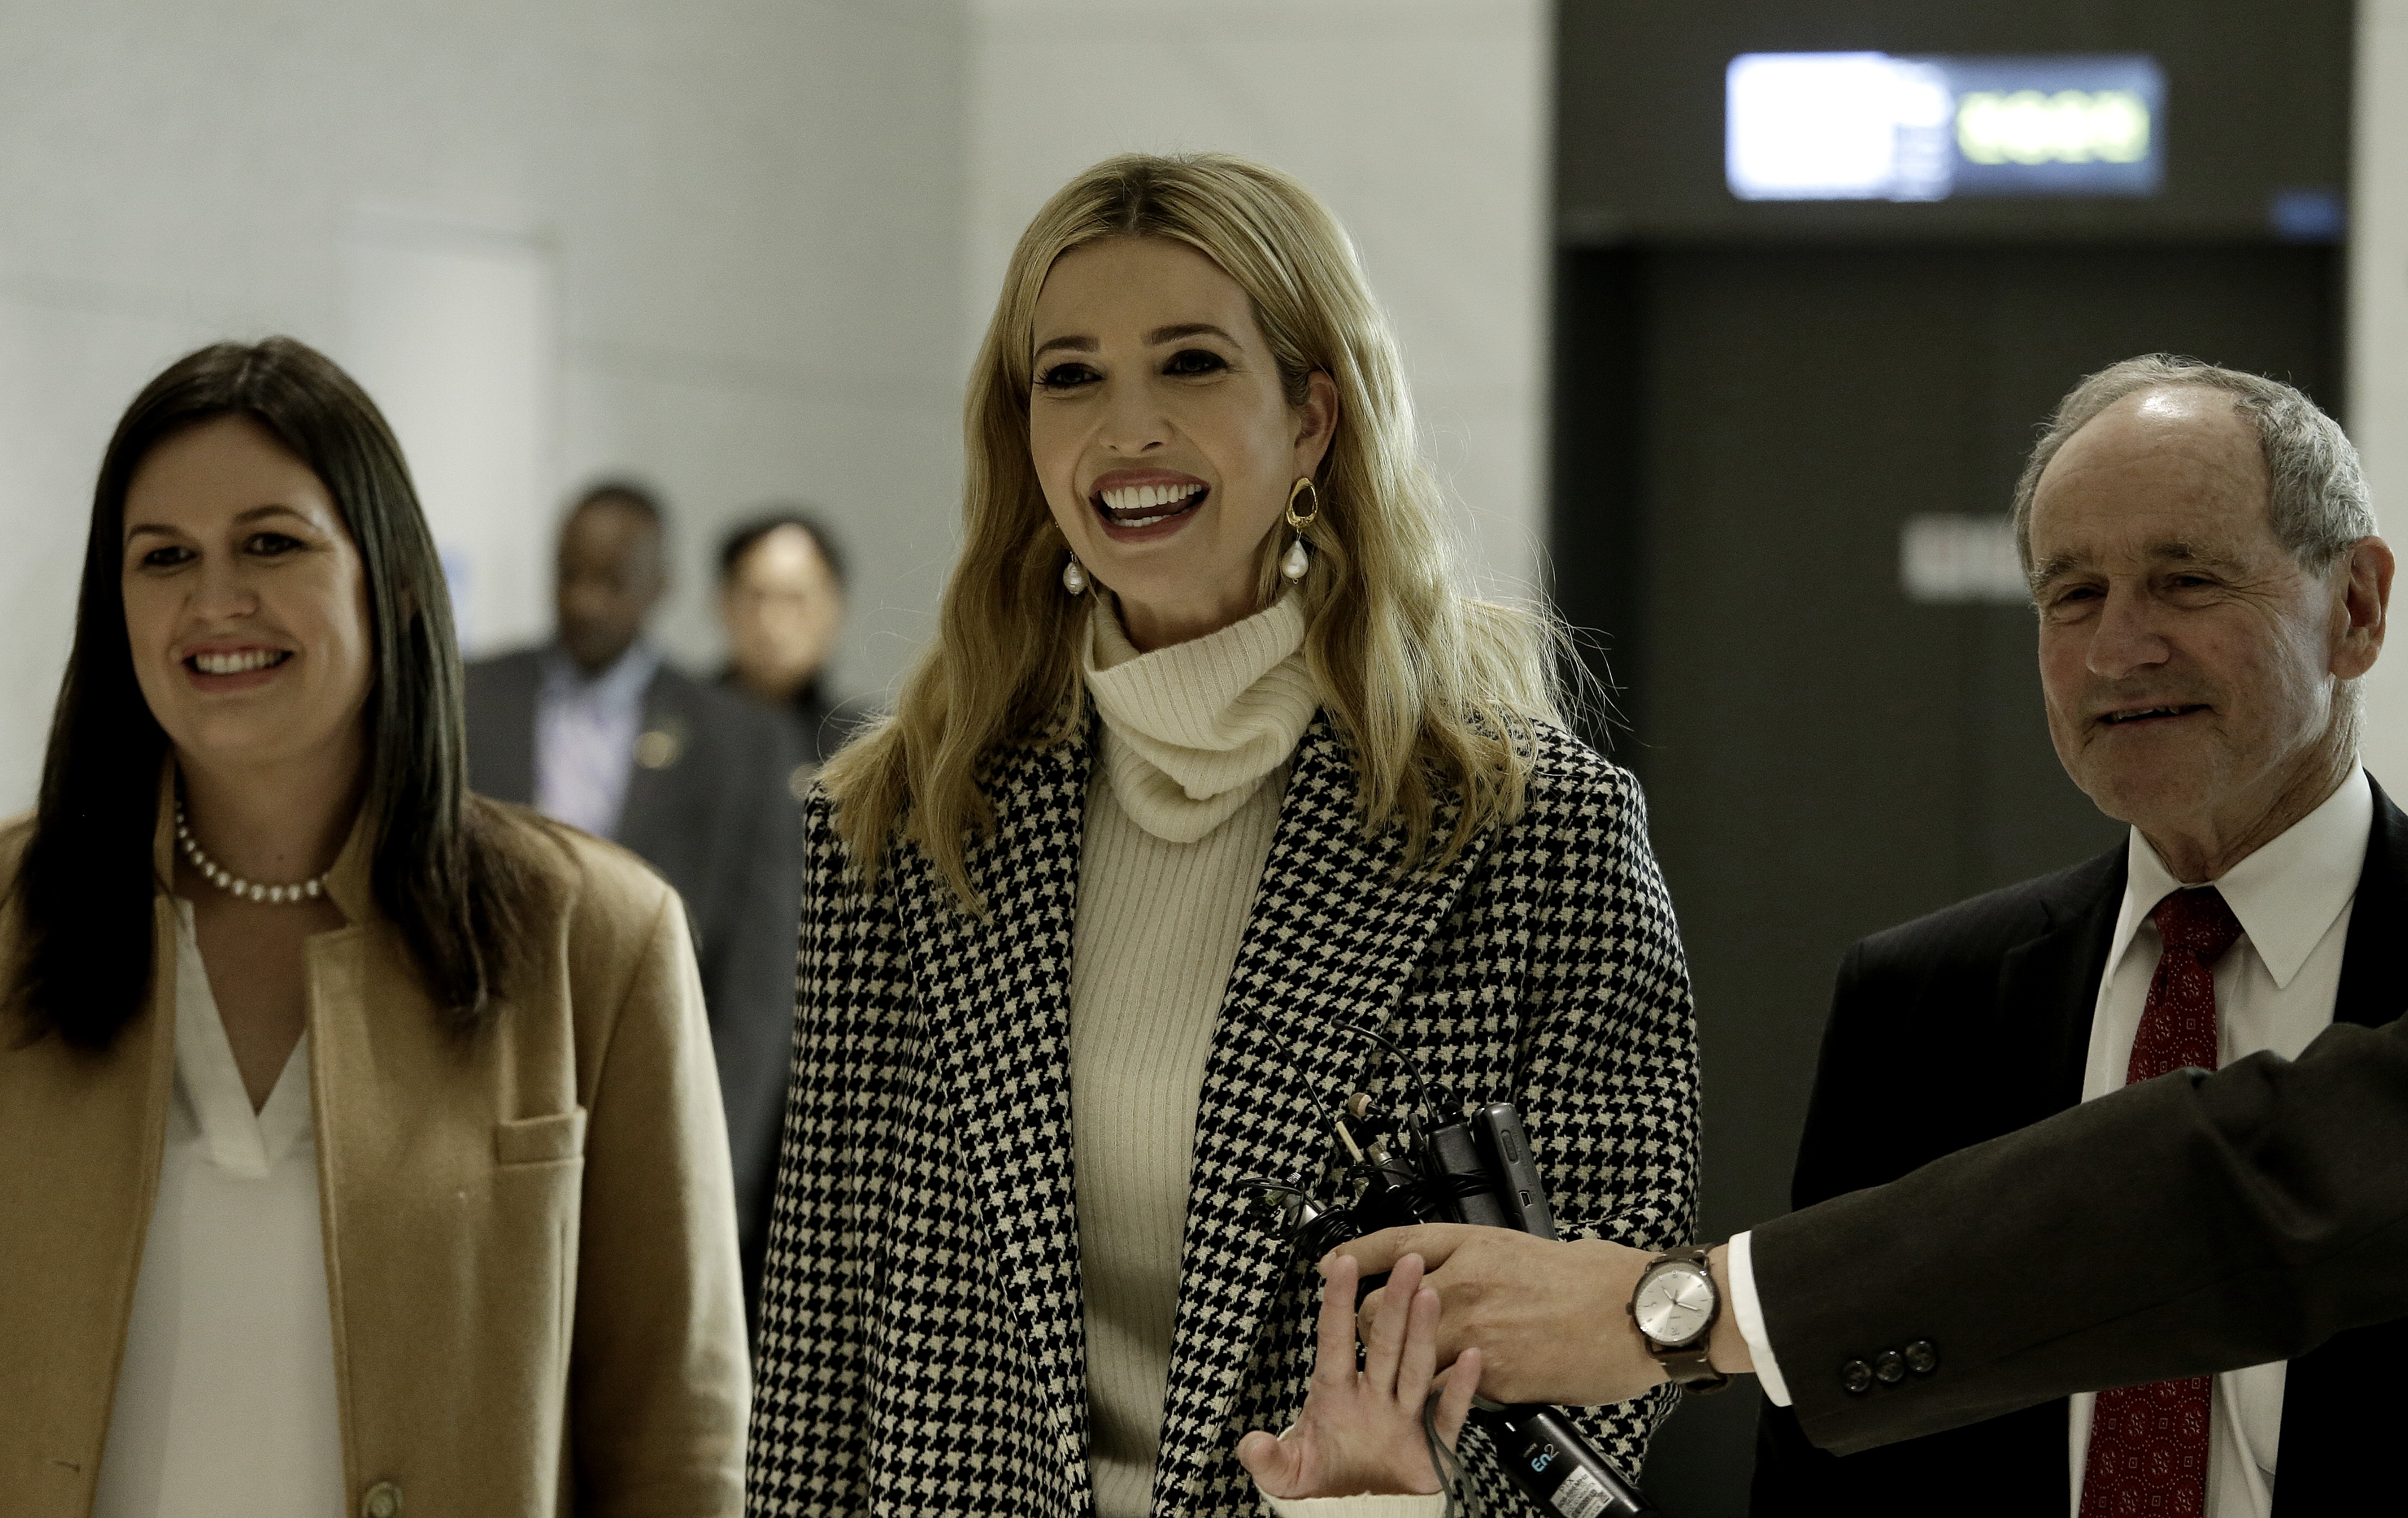 Ivanka Trump, advisor to and daughter of U.S. President Donald Trump, arrives at Incheon International Airport on February 23, 2018 in Seoul, South Korea